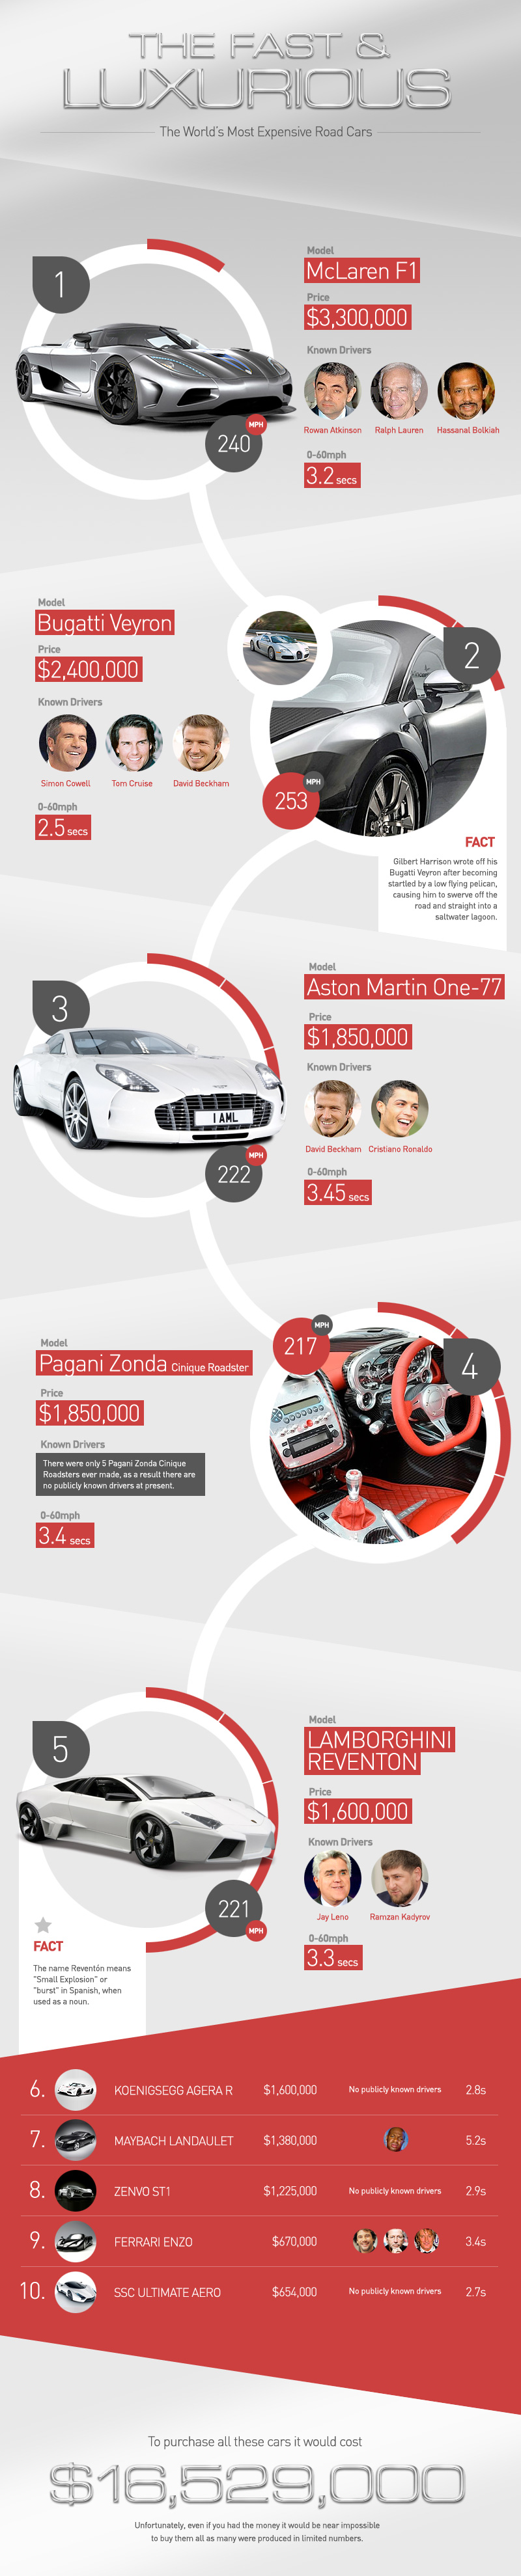 most-expensive-road-cars-infographic